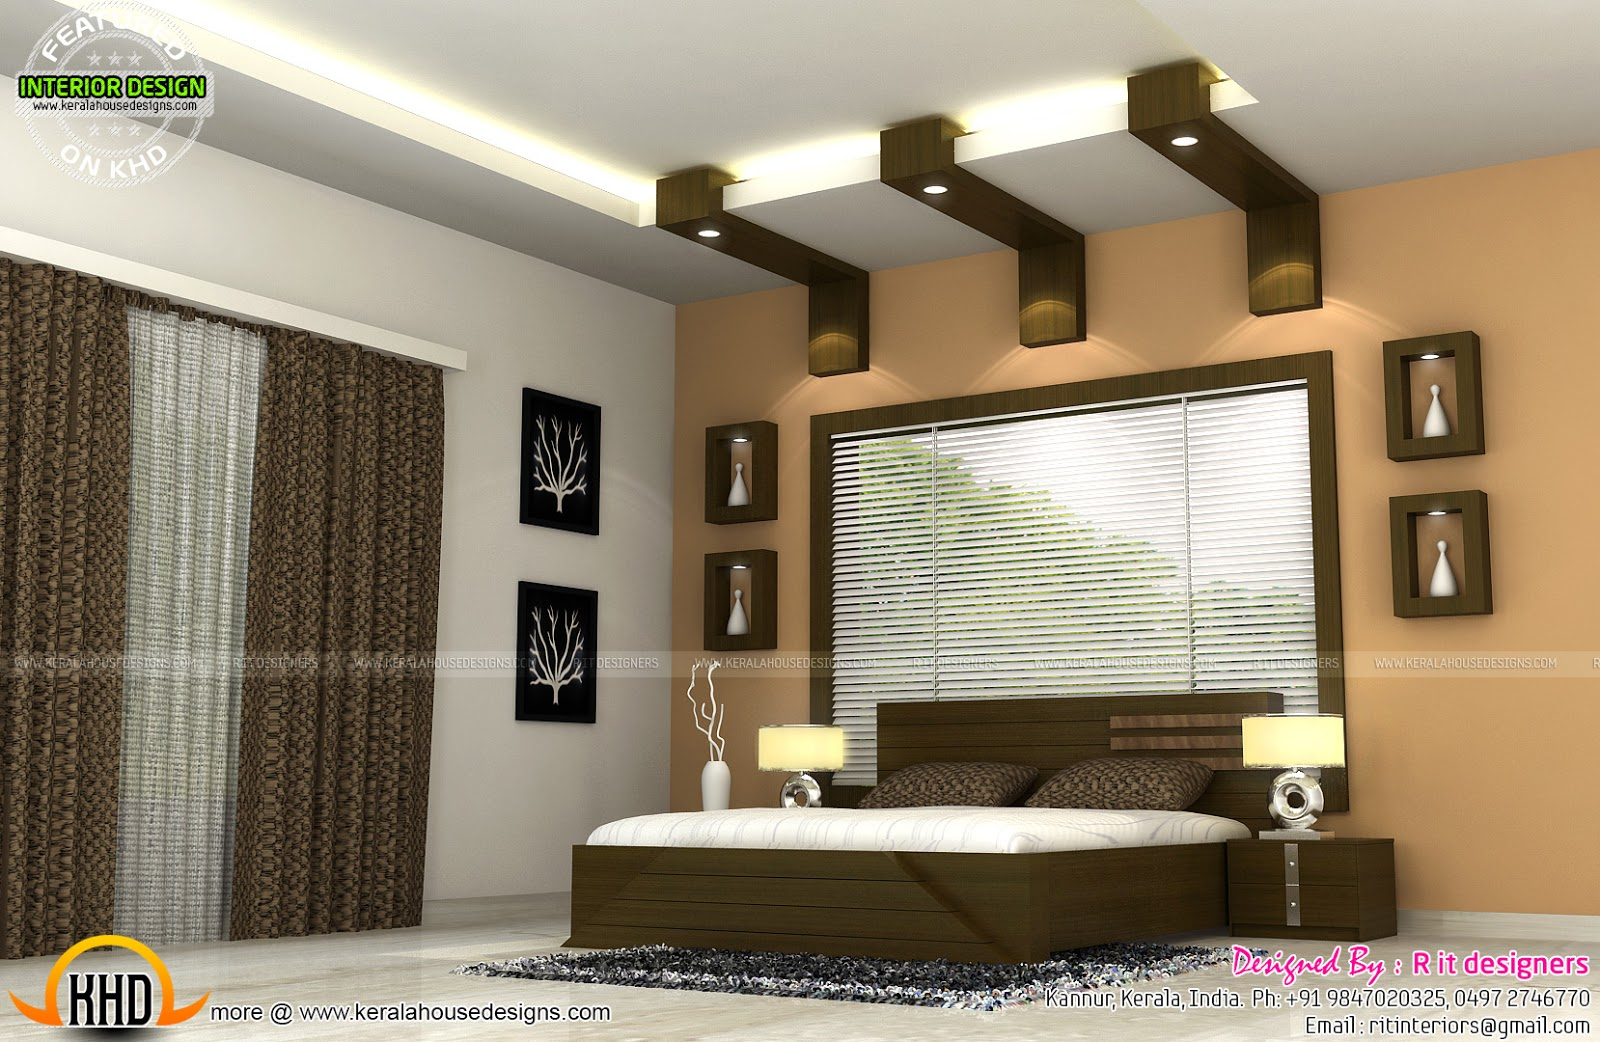 Interiors of bedrooms and kitchen kerala home design and for House plans with interior pictures